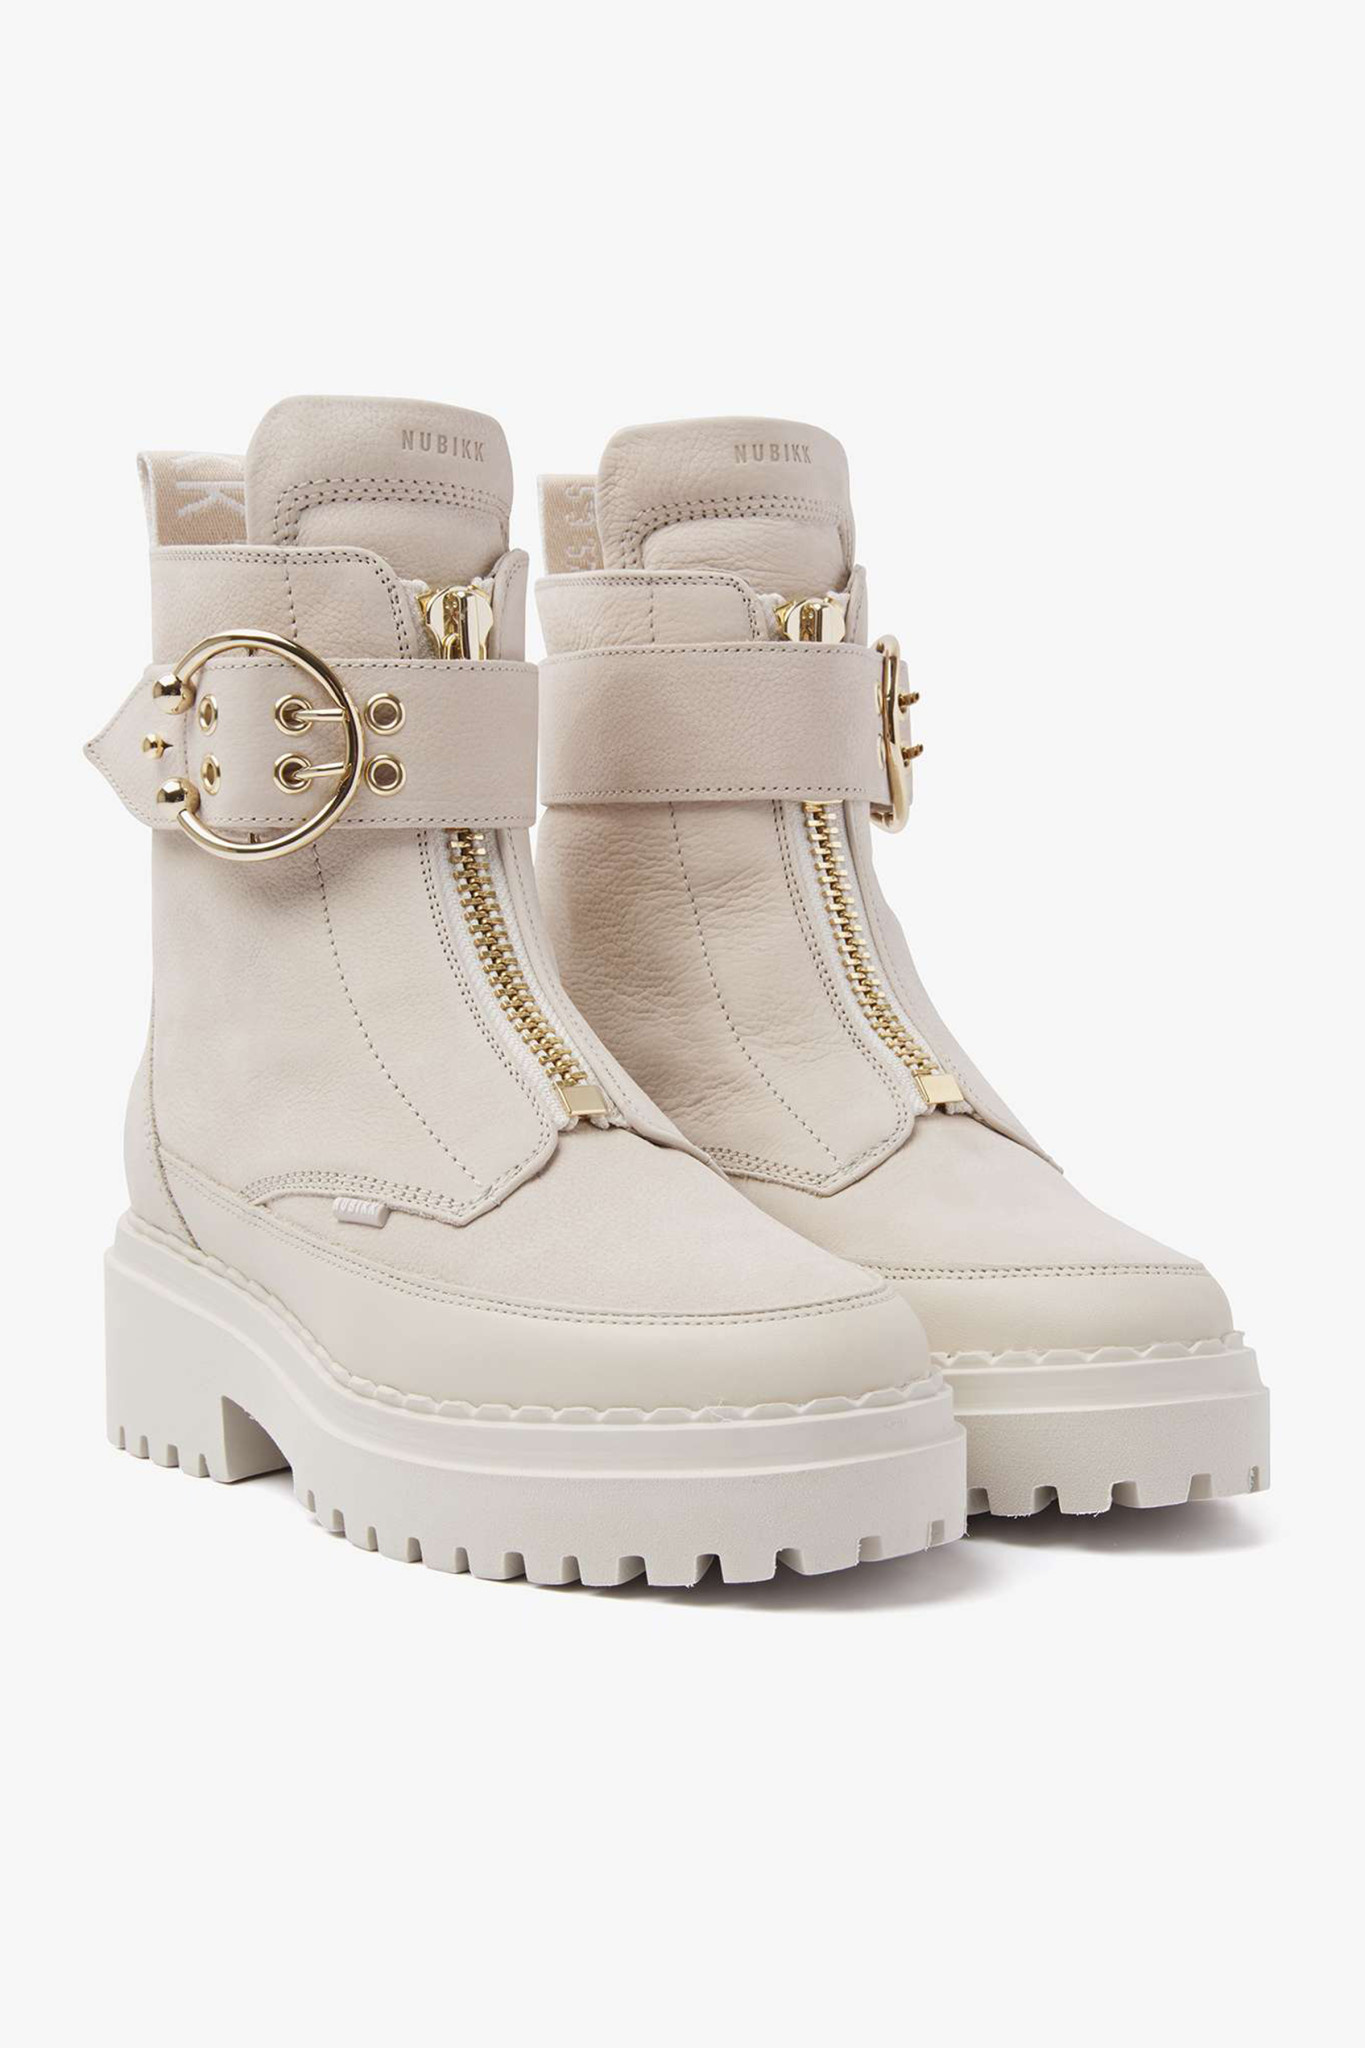 Fae Ray Boots - Desert Leather-1